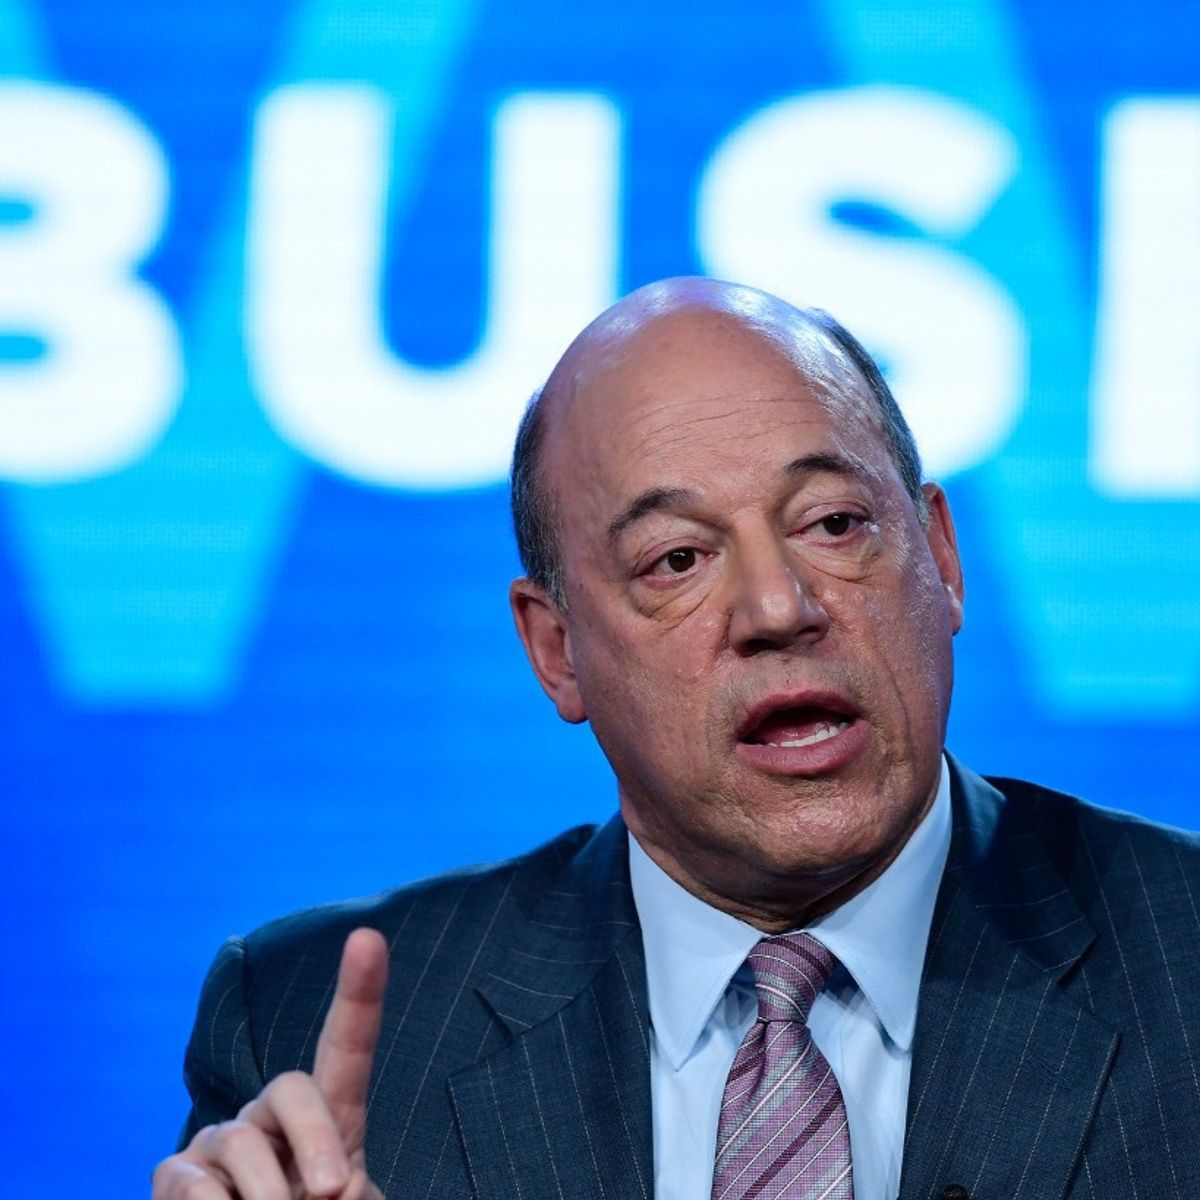 Why Ari Fleischer is against resurrecting the extinct White House press briefings